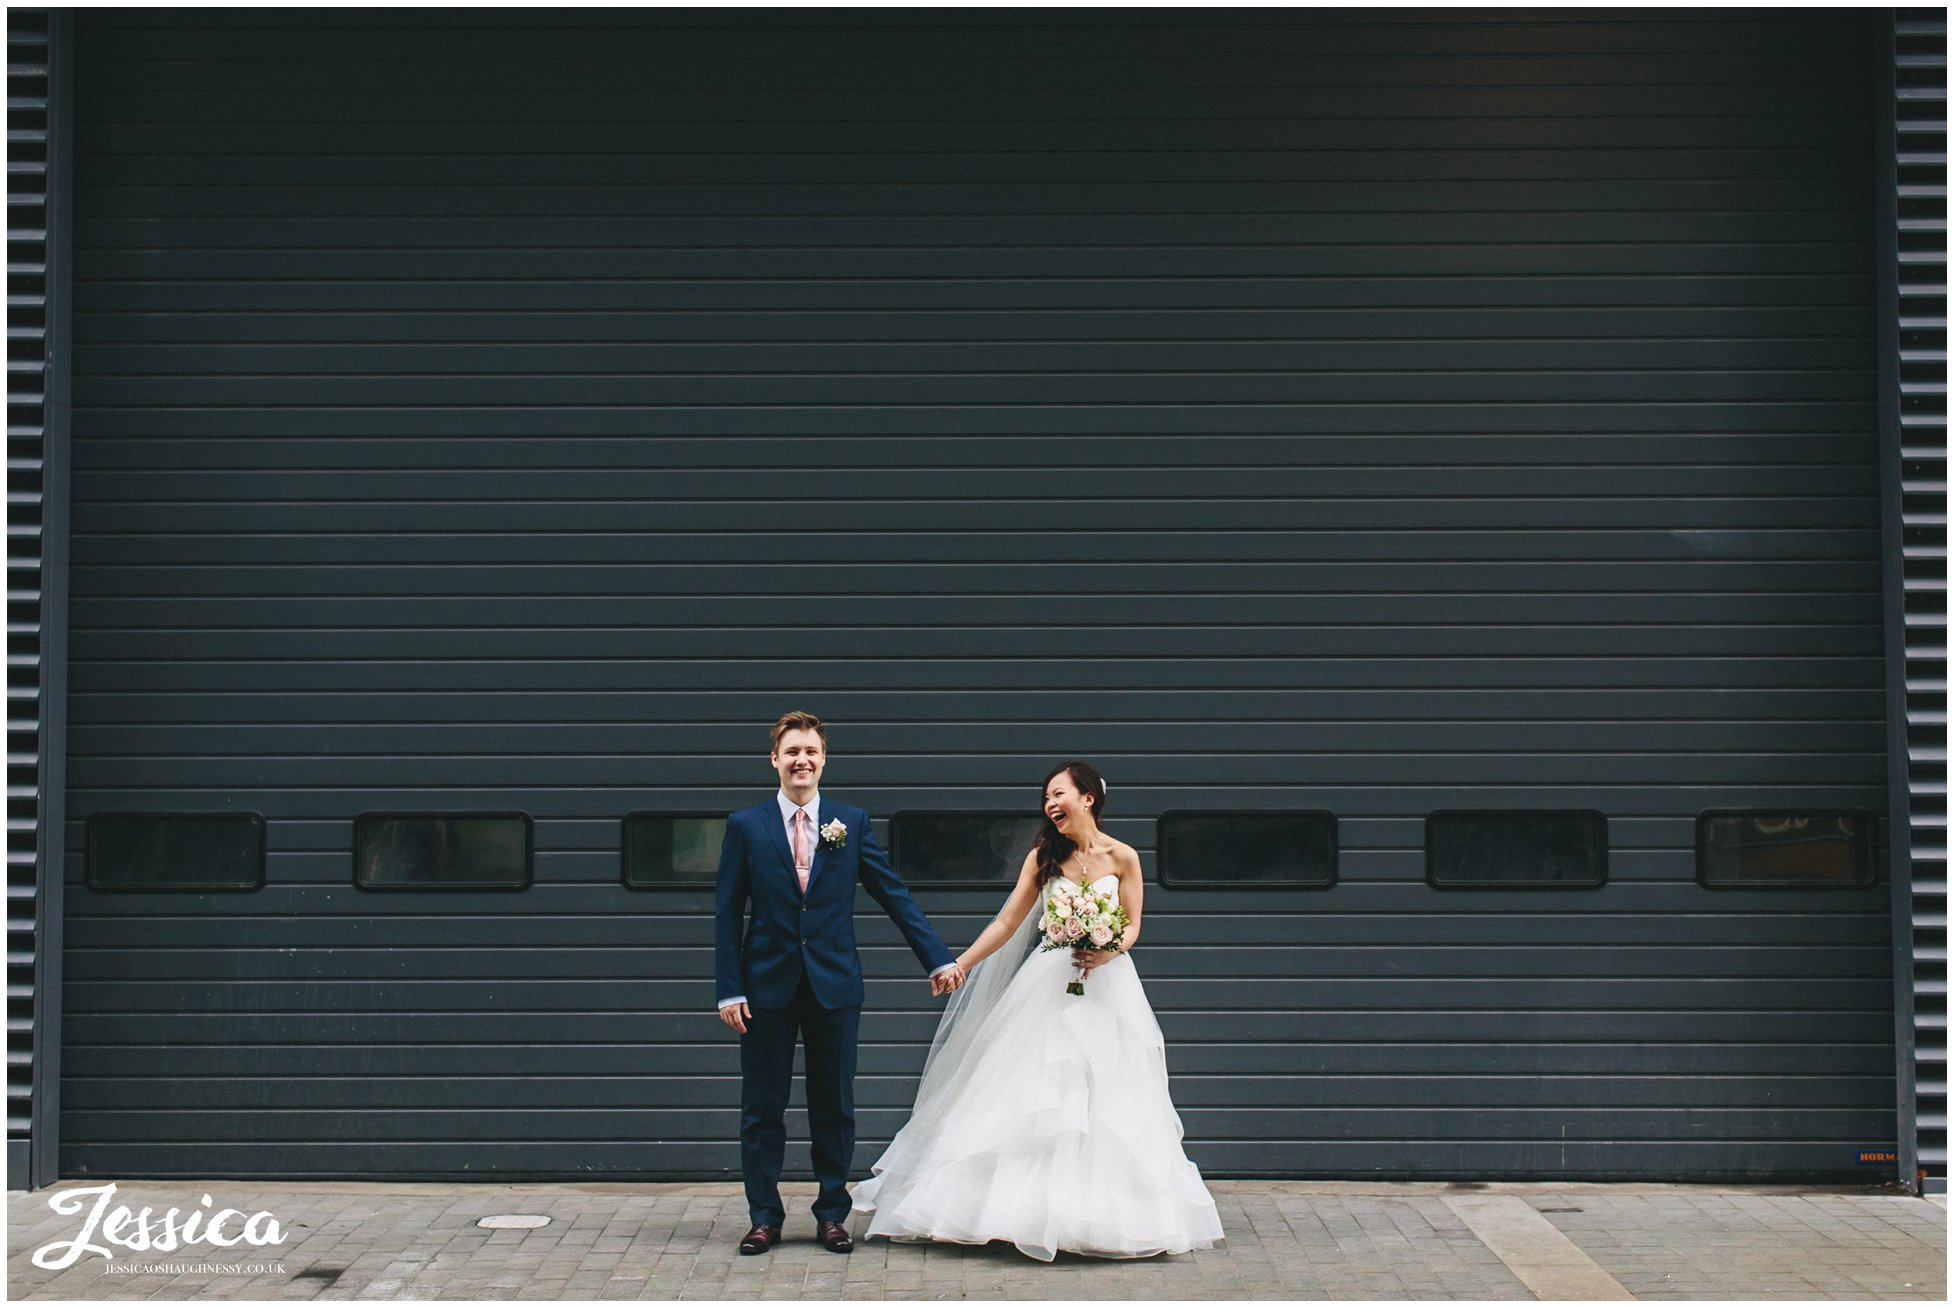 on the 7th wedding, manchester - bride & groom hold hands